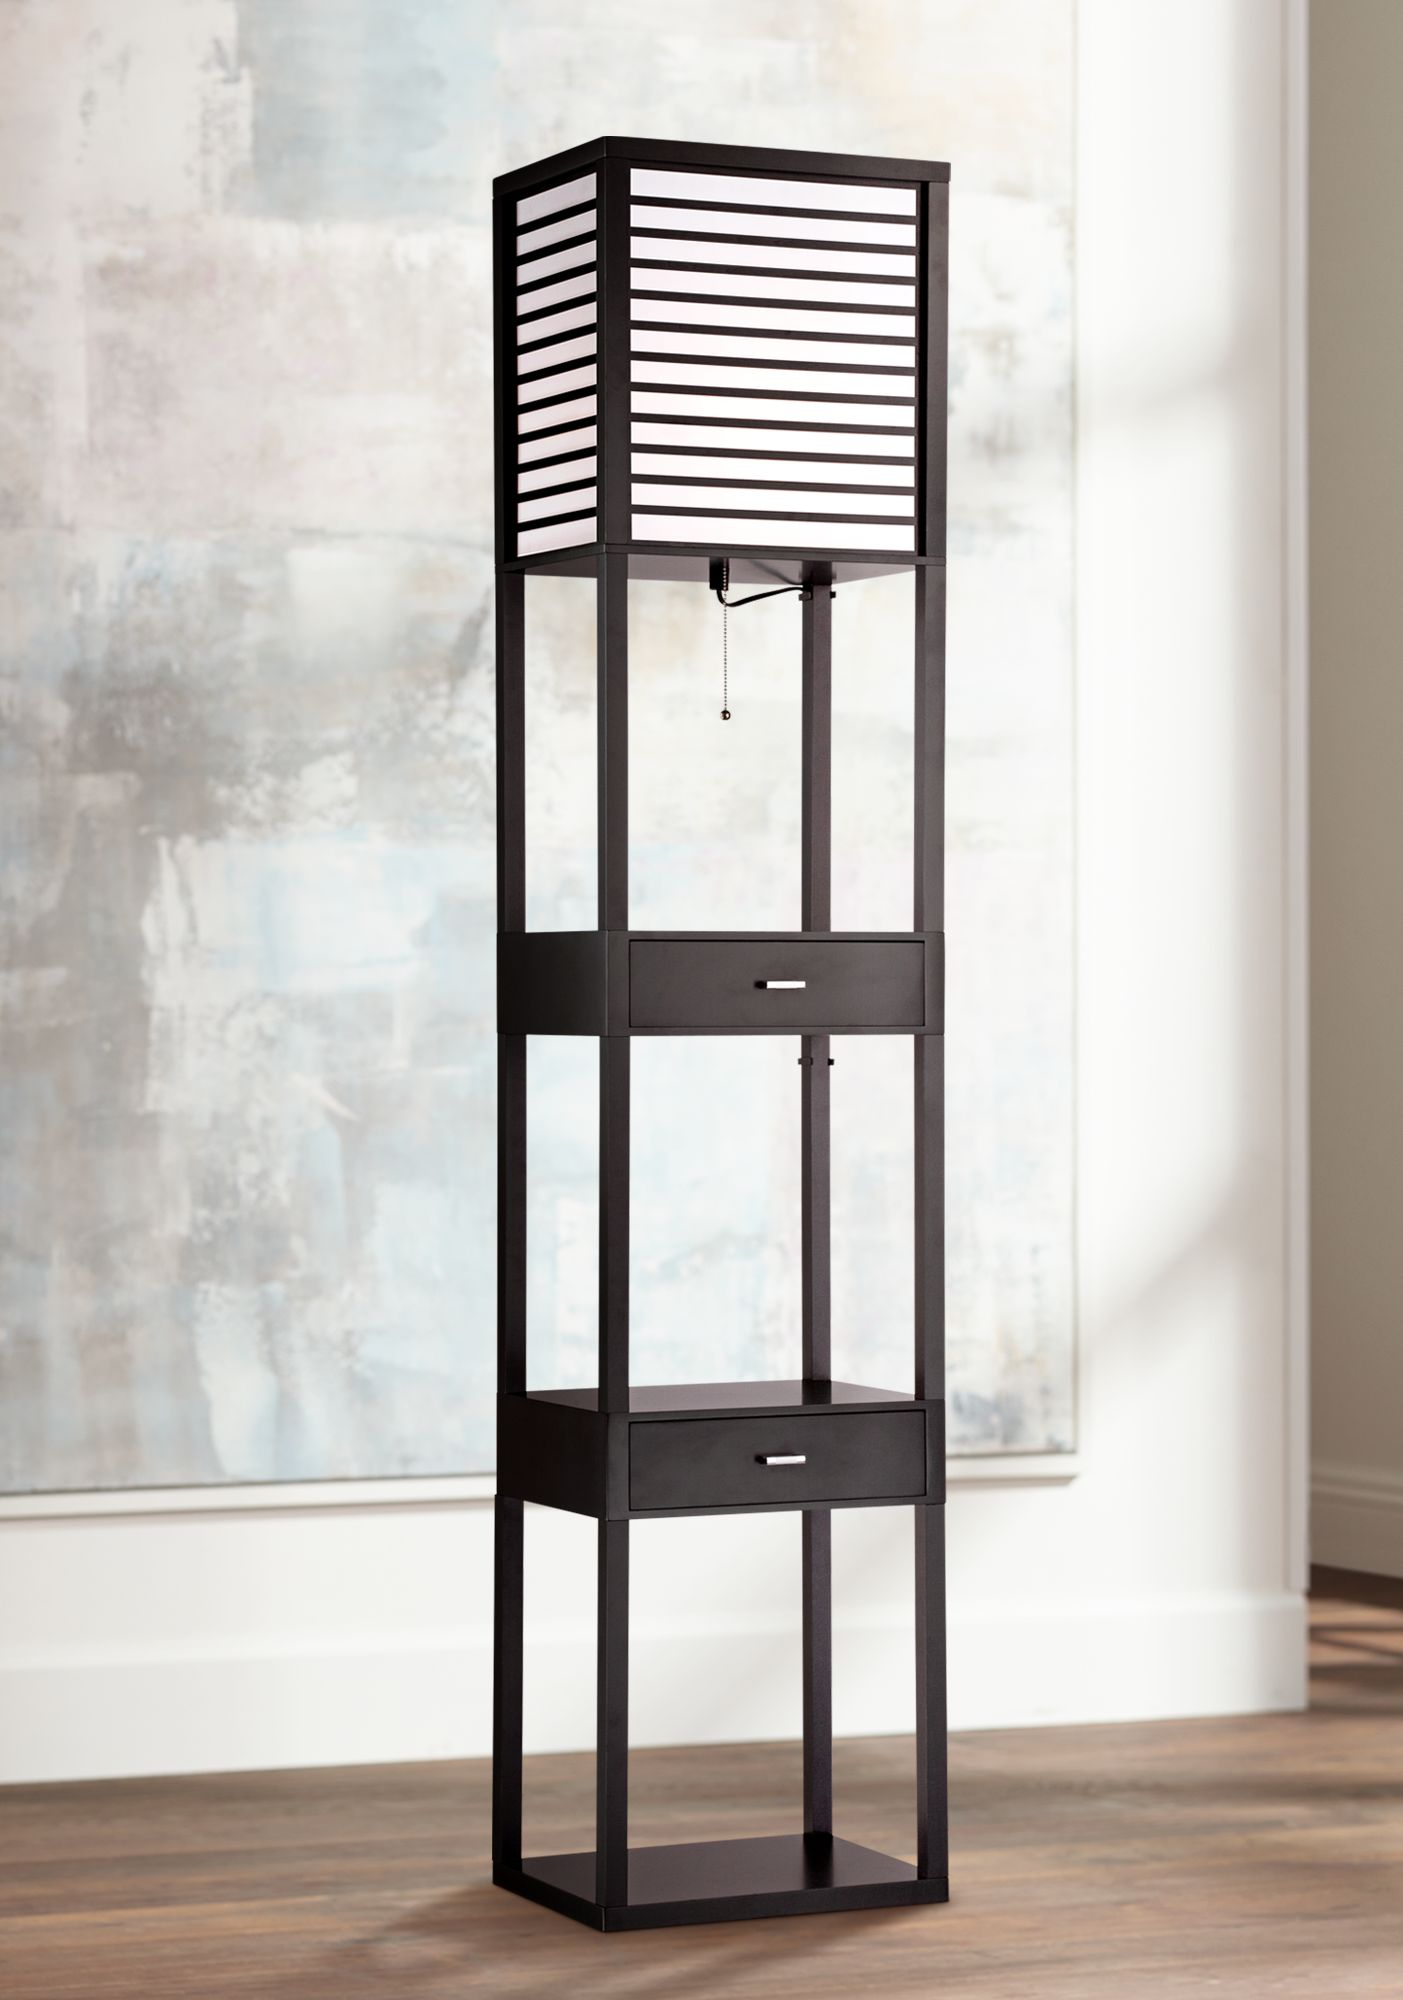 Good Tamber Etagere Floor Lamp With Shelf And Drawers